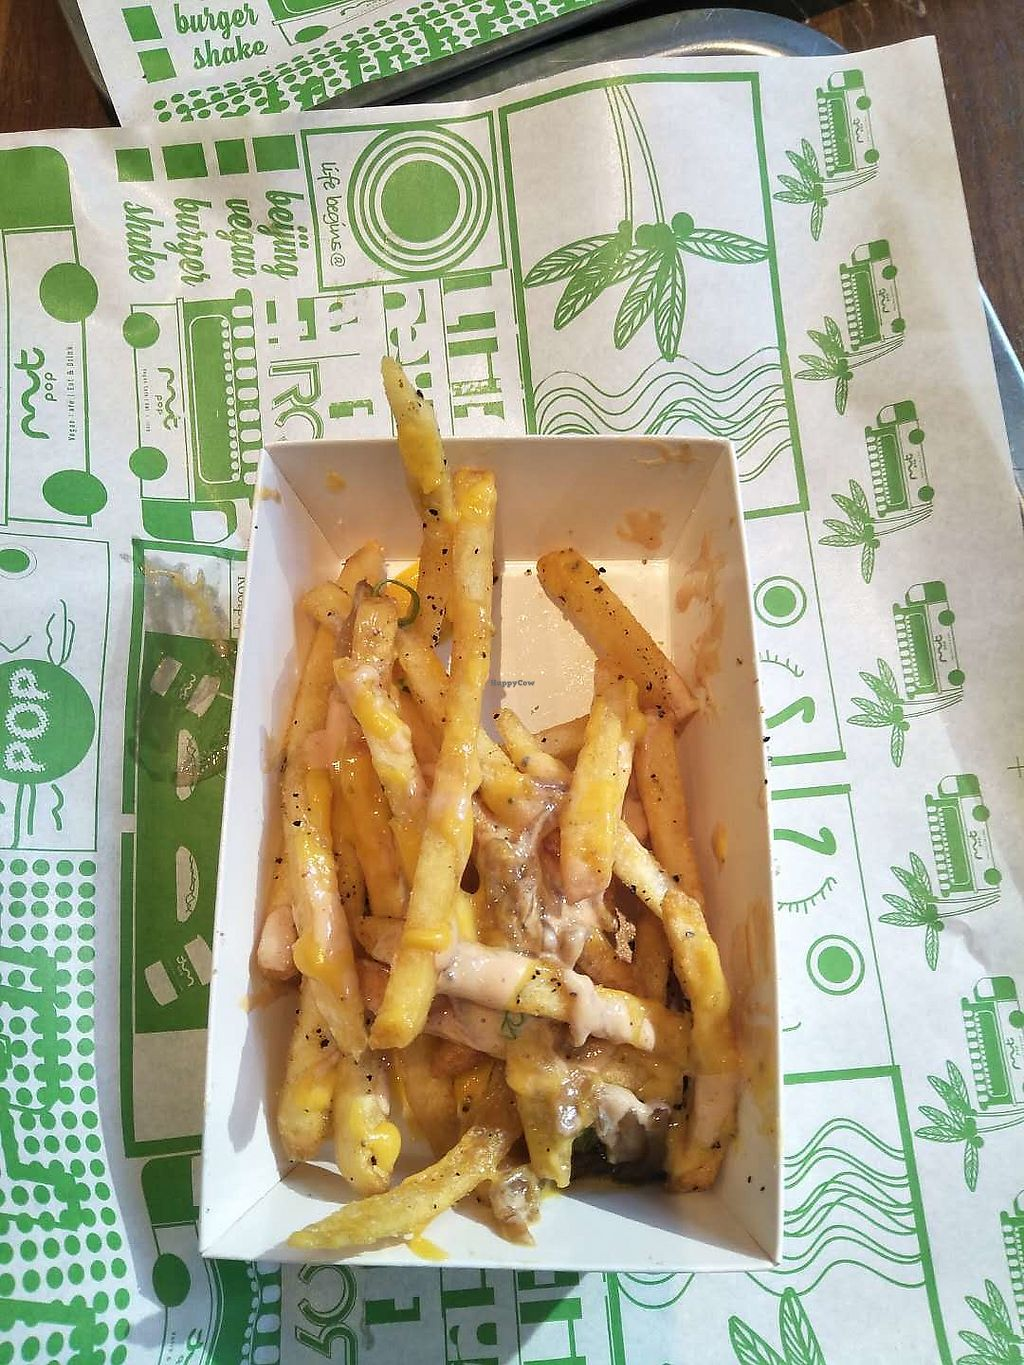 """Photo of Root Pop  by <a href=""""/members/profile/KaRantz"""">KaRantz</a> <br/>So called """"animal fries"""" <br/> January 11, 2018  - <a href='/contact/abuse/image/95917/345359'>Report</a>"""